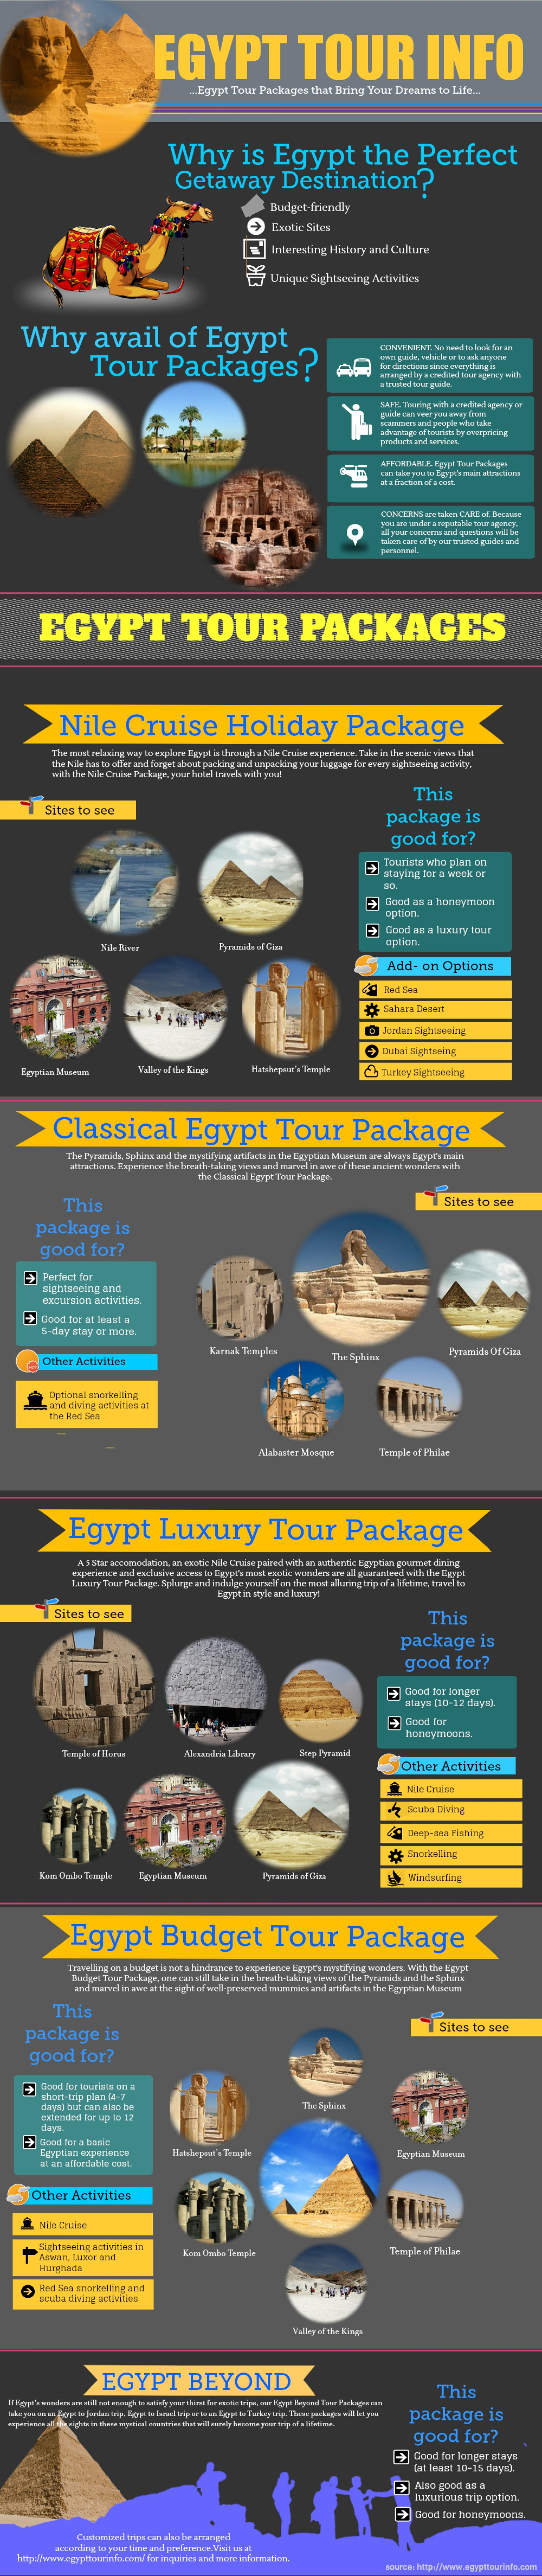 Egypt tour packages will make your dream come true